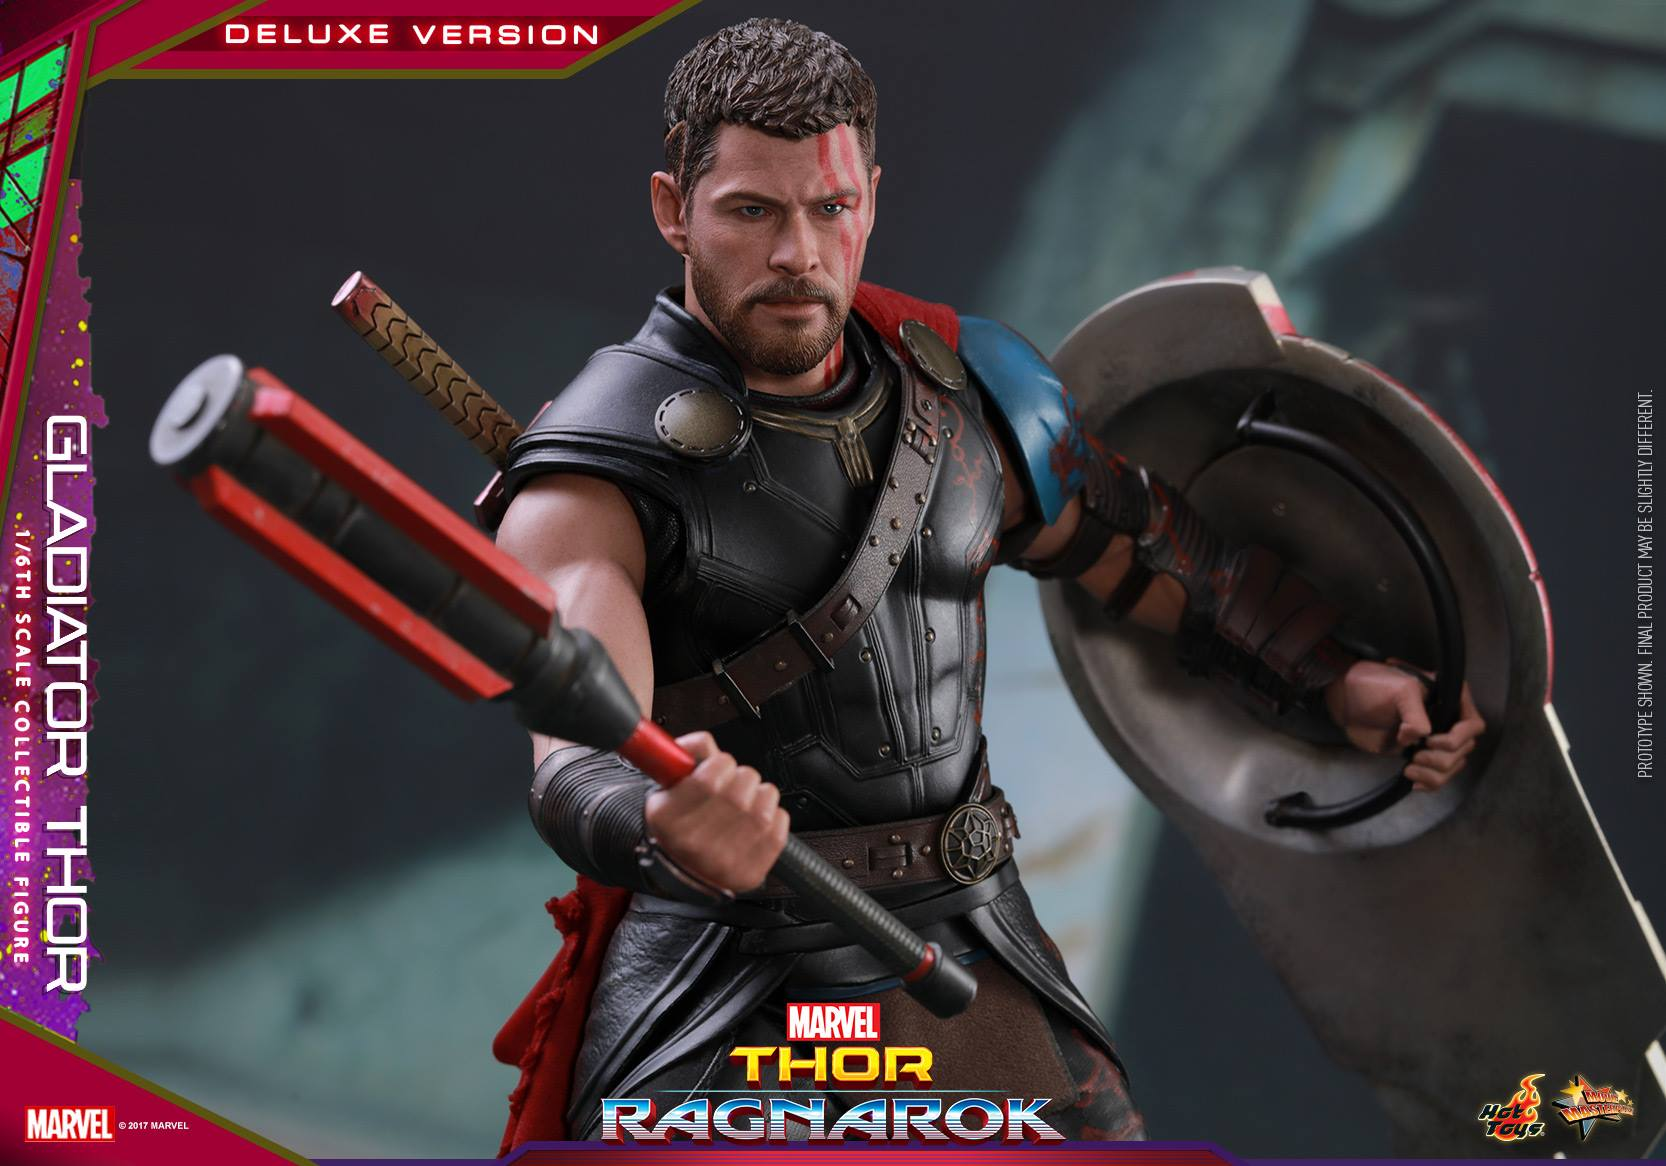 Link a Hot Toys Thor Ragnarok DeLuxe 22